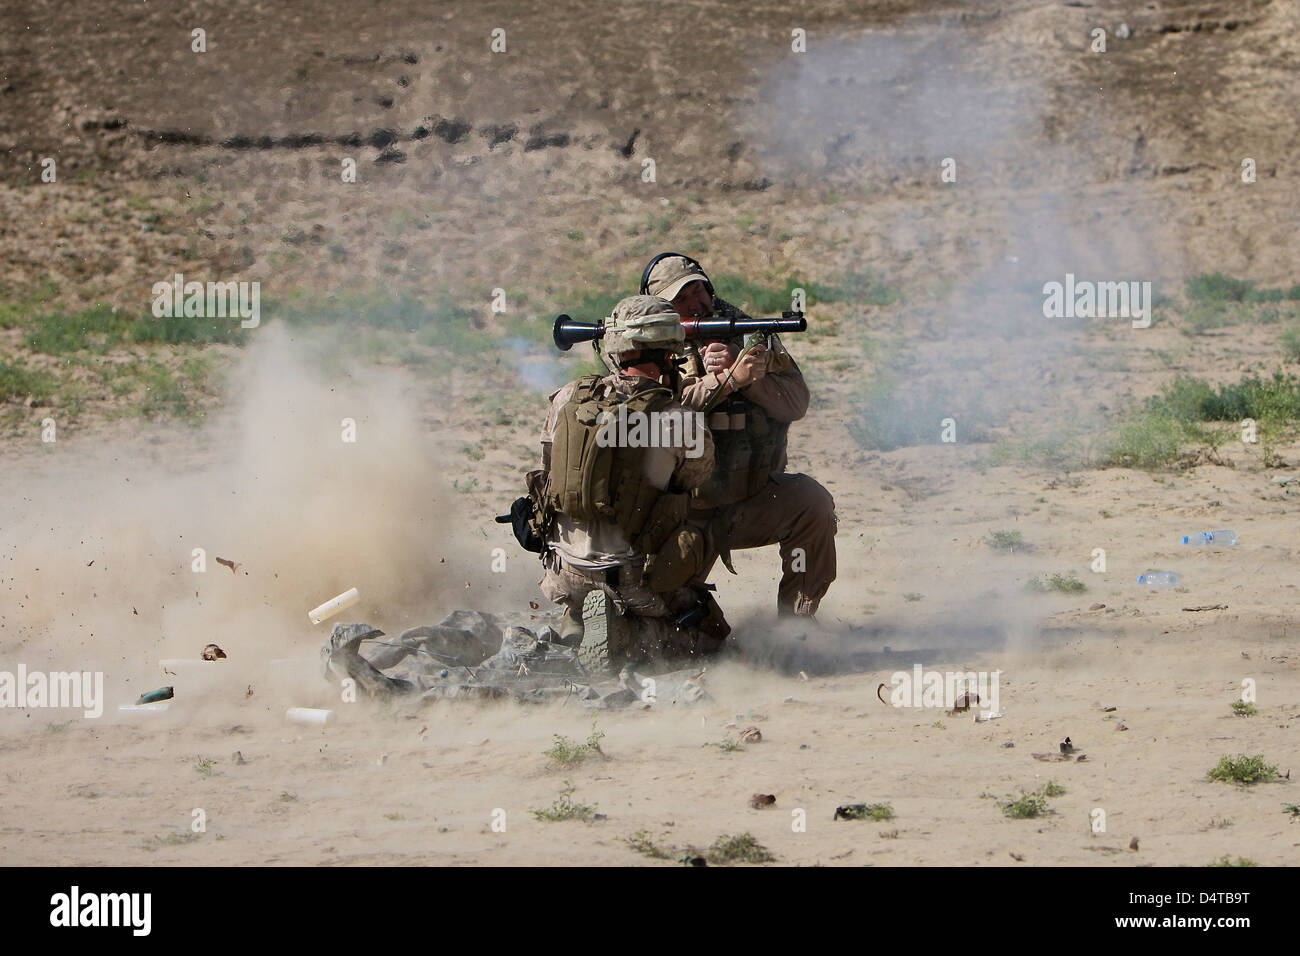 A U.S. Contractor fires a rocket-propelled grenade launcher. - Stock Image